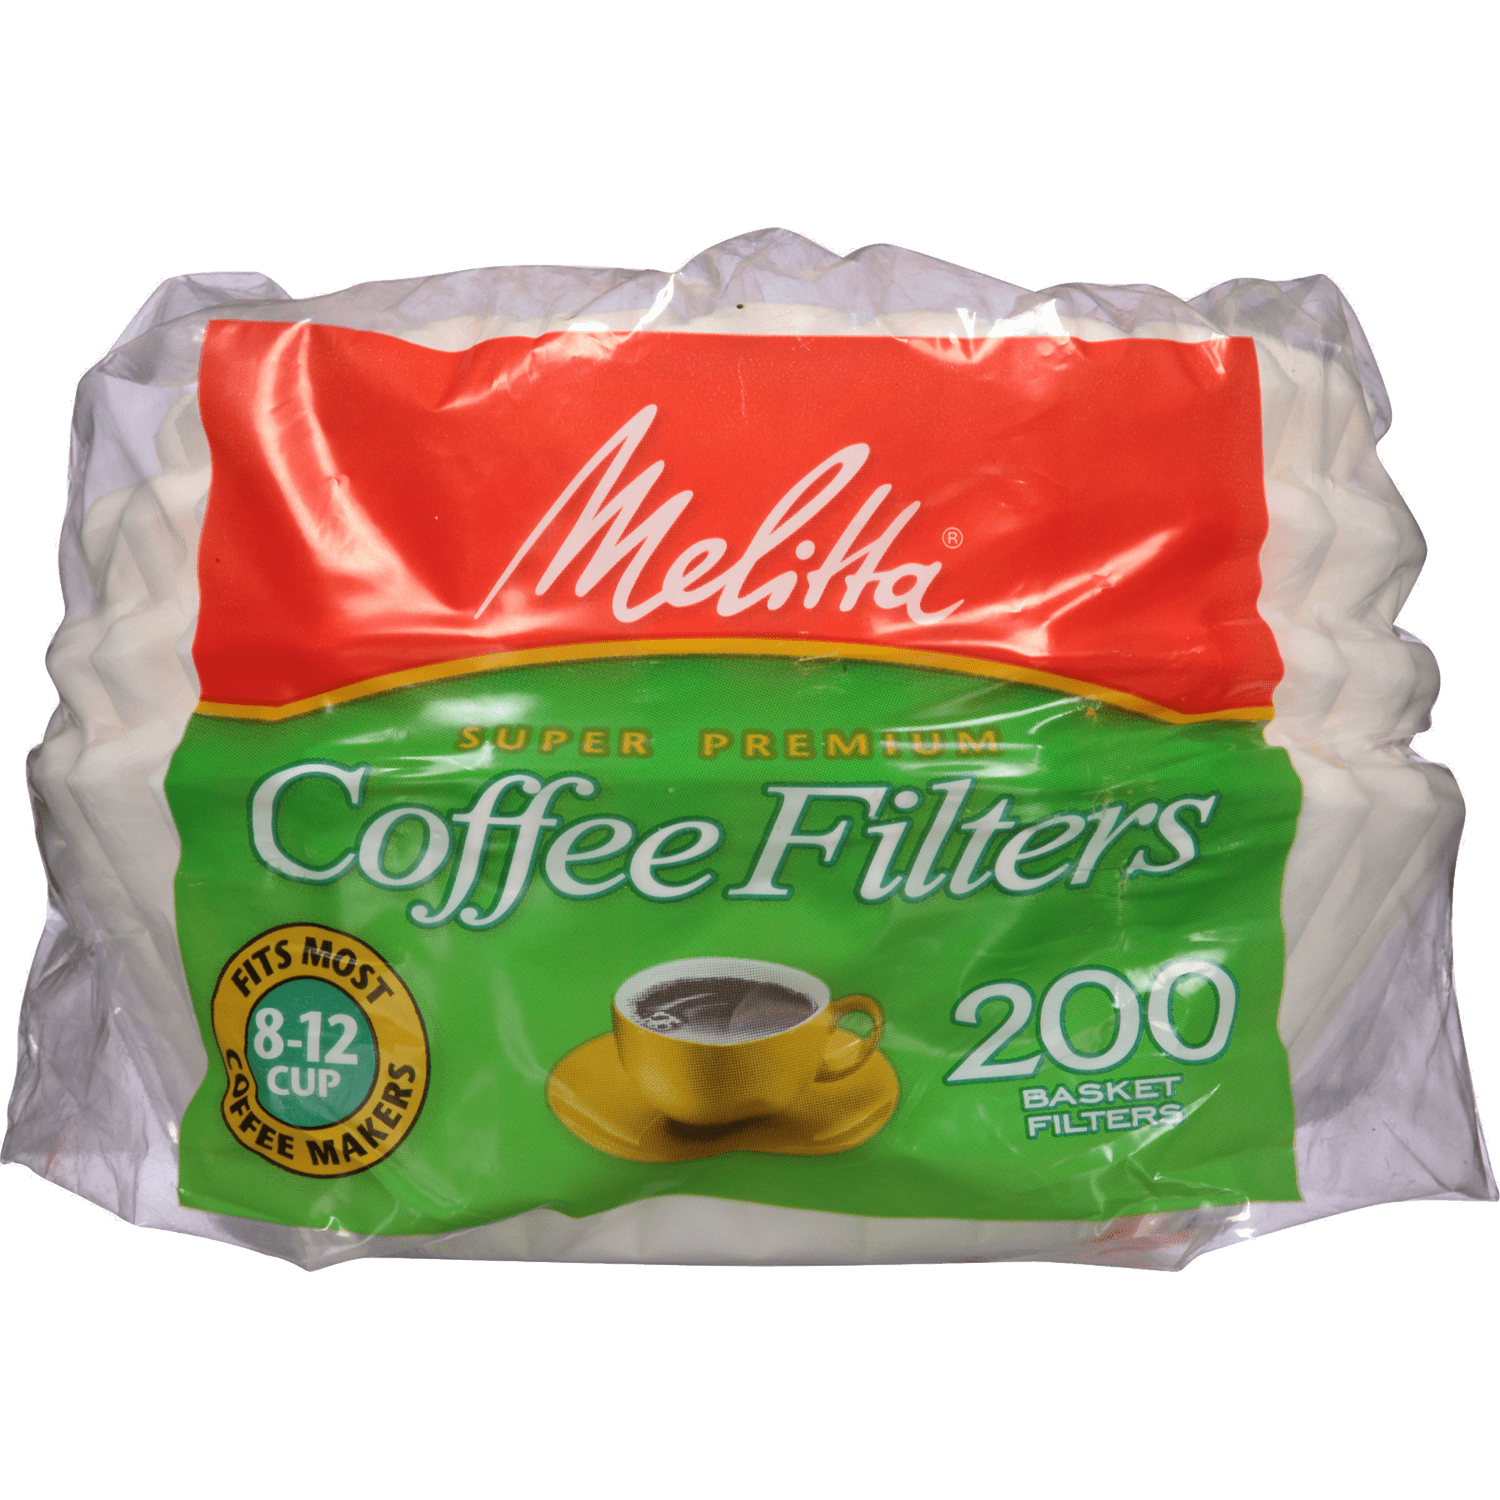 8-12 Cup Melitta Basket Filter Paper White - 200 Count - Coffee Roaster